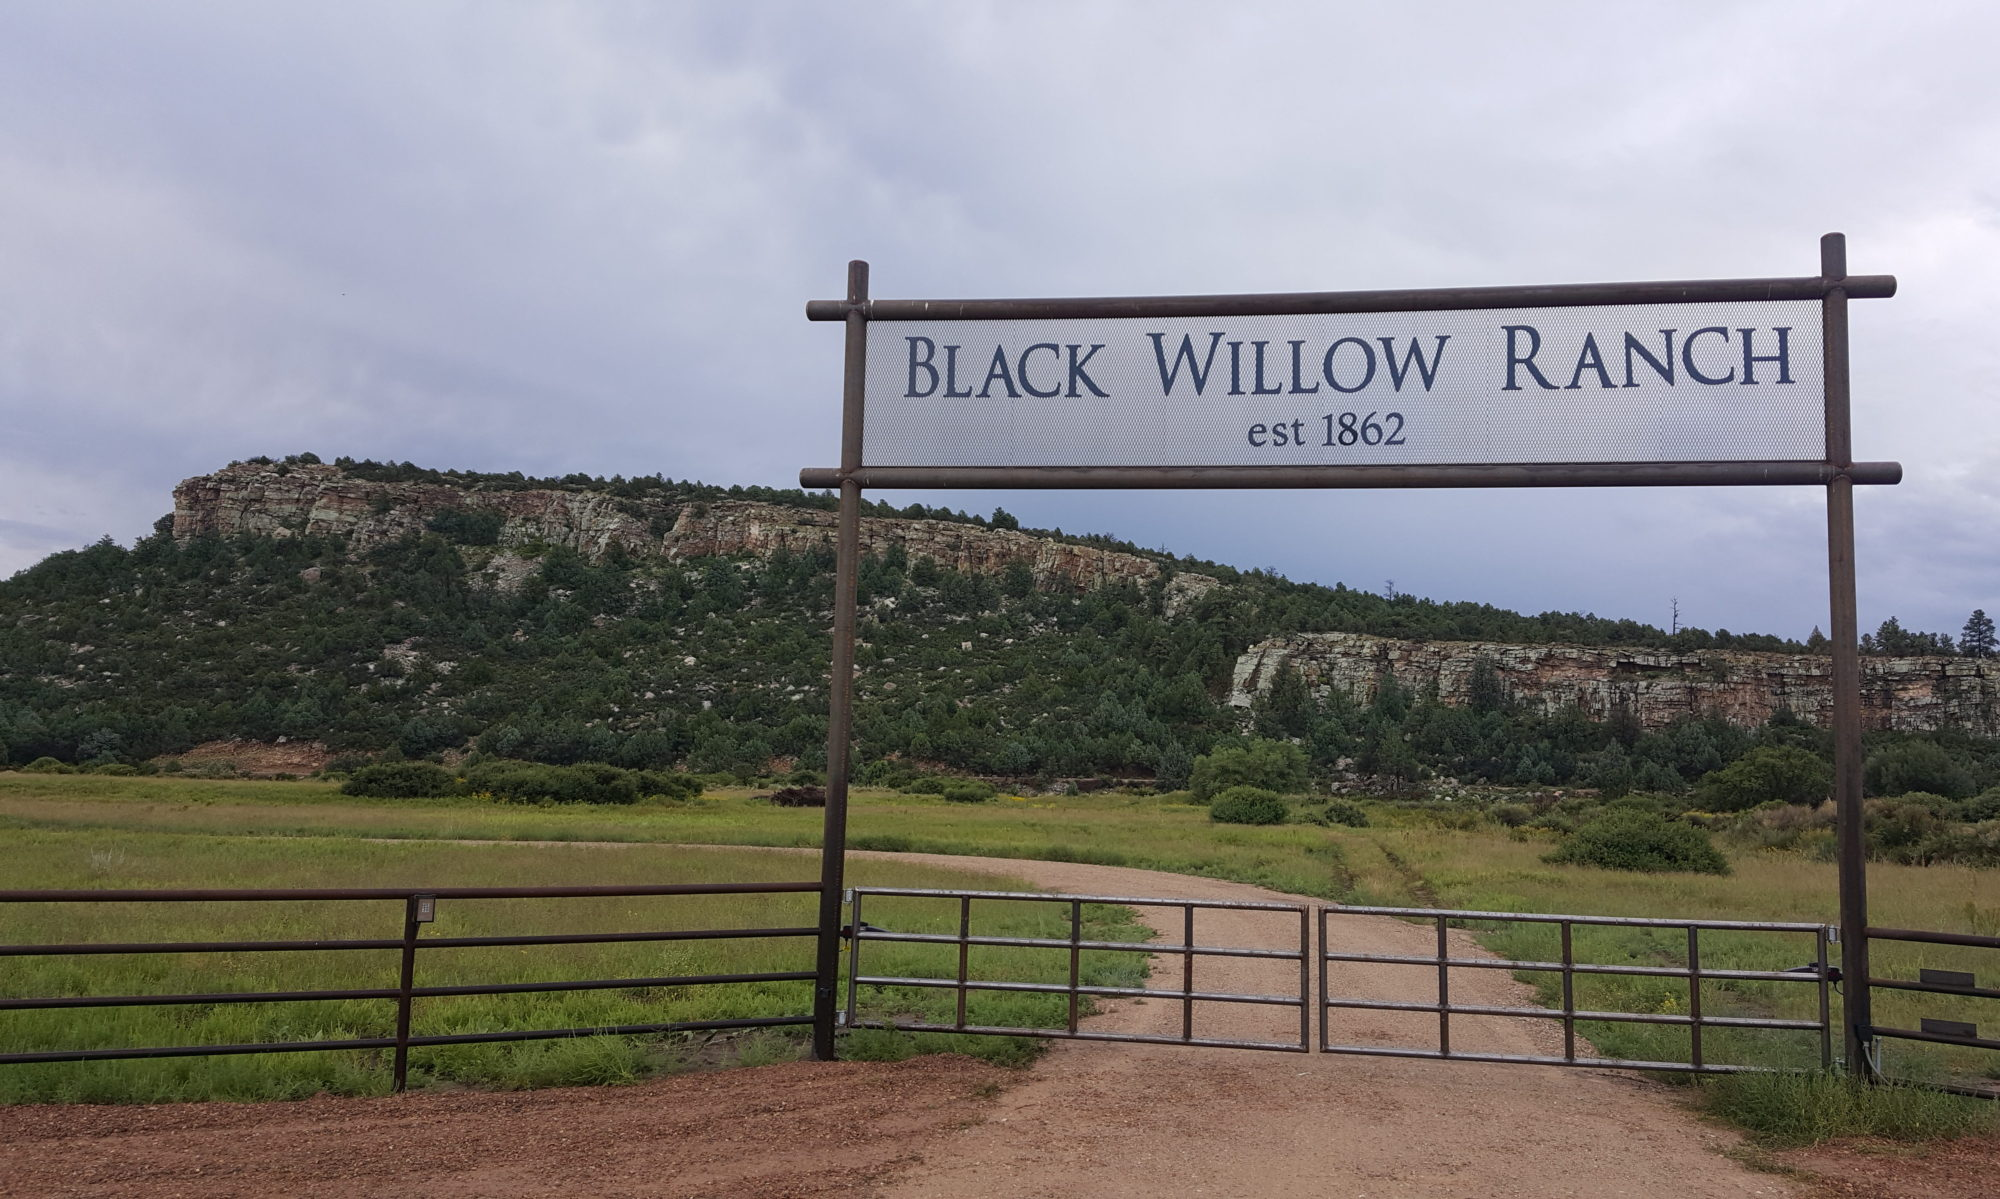 Black Willow Ranch